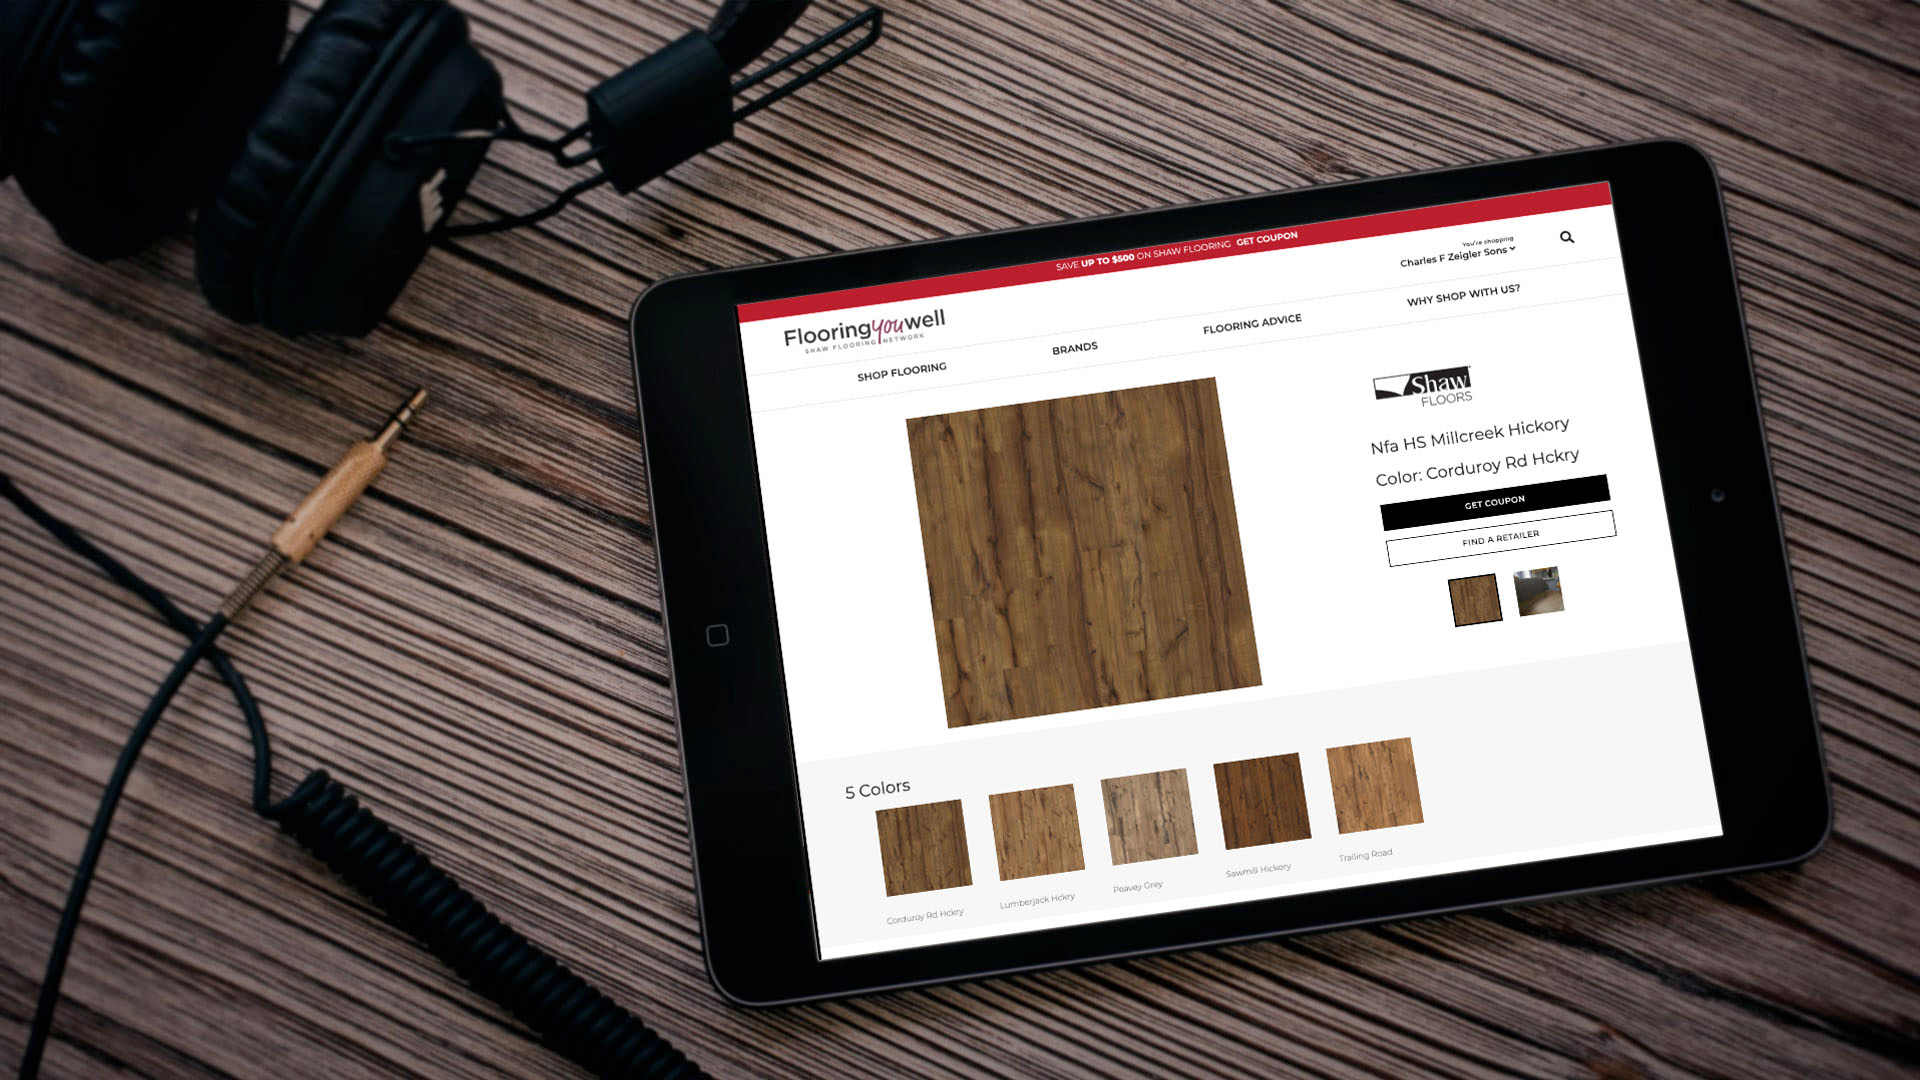 Flooring you well on tablet | Mobile Marketing, LLC